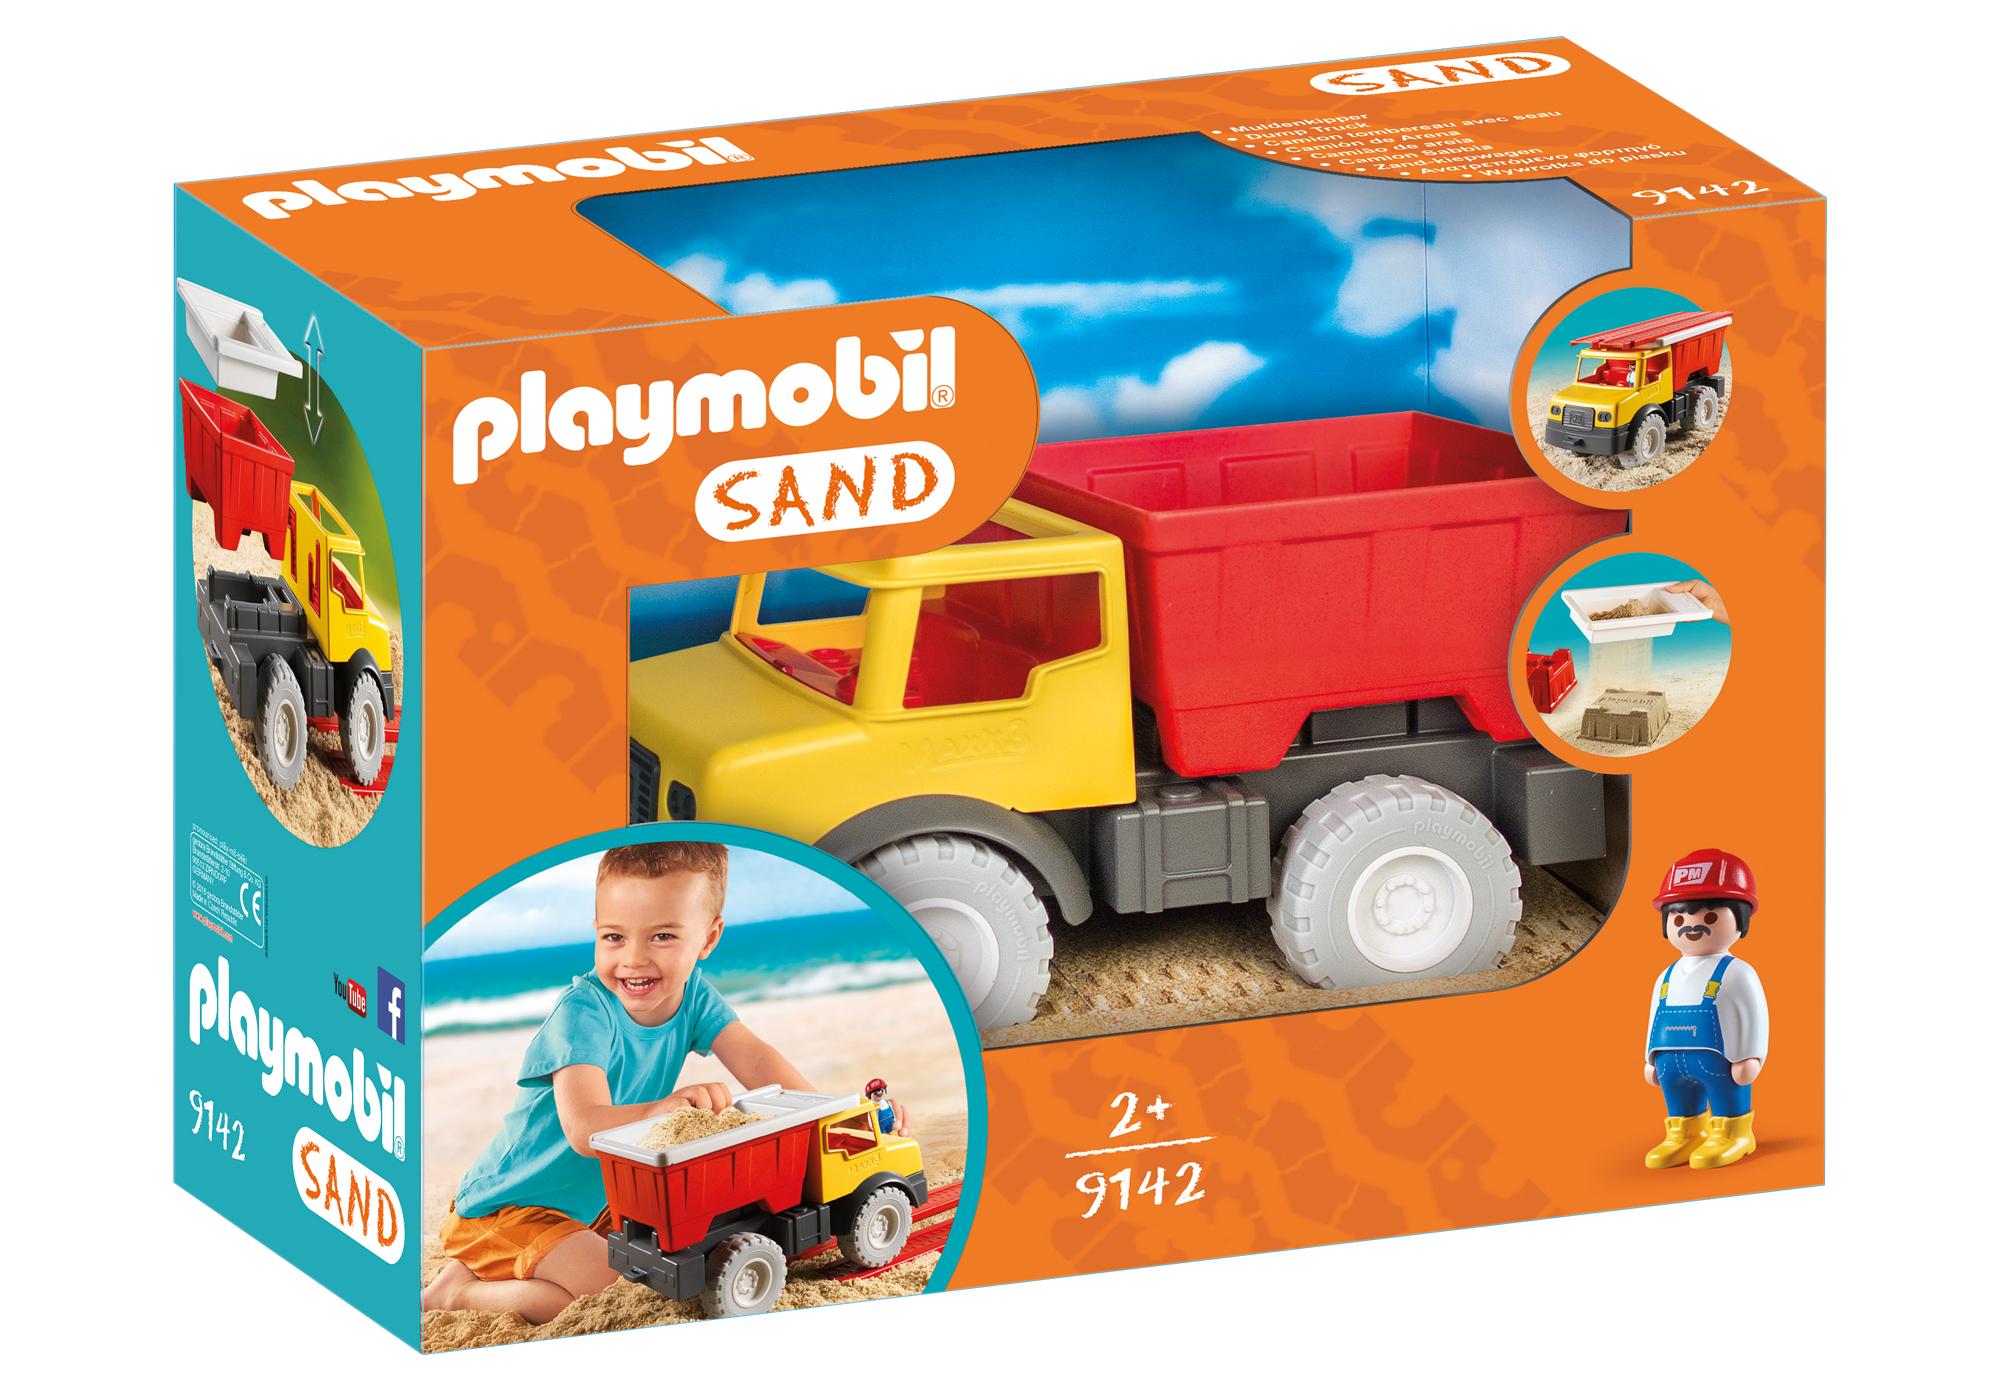 http://media.playmobil.com/i/playmobil/9142_product_box_front